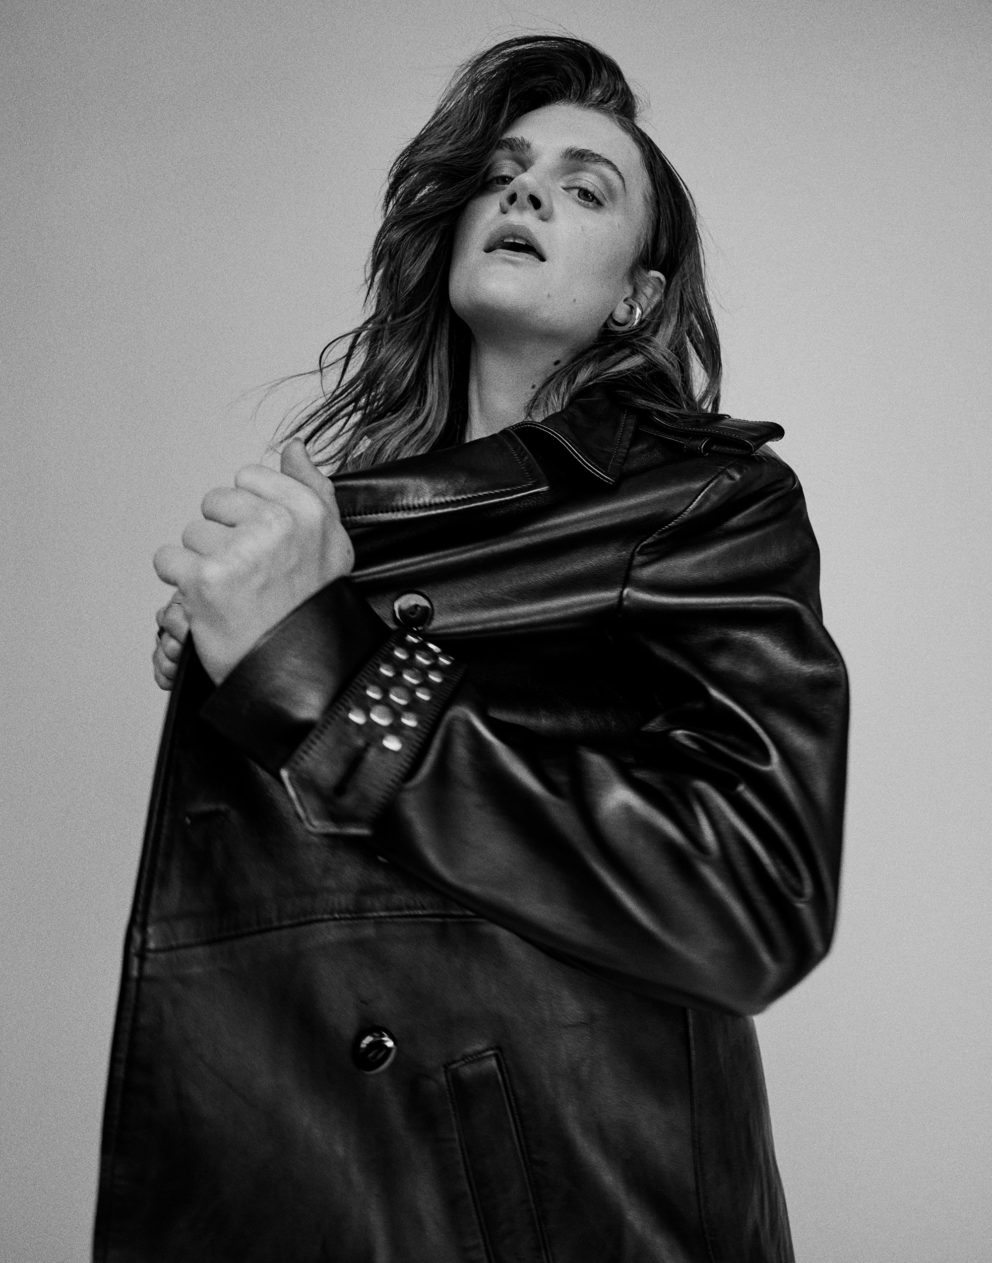 200618 0010 Sbjct Gayle Rankin 102 By Christian Hogstedt